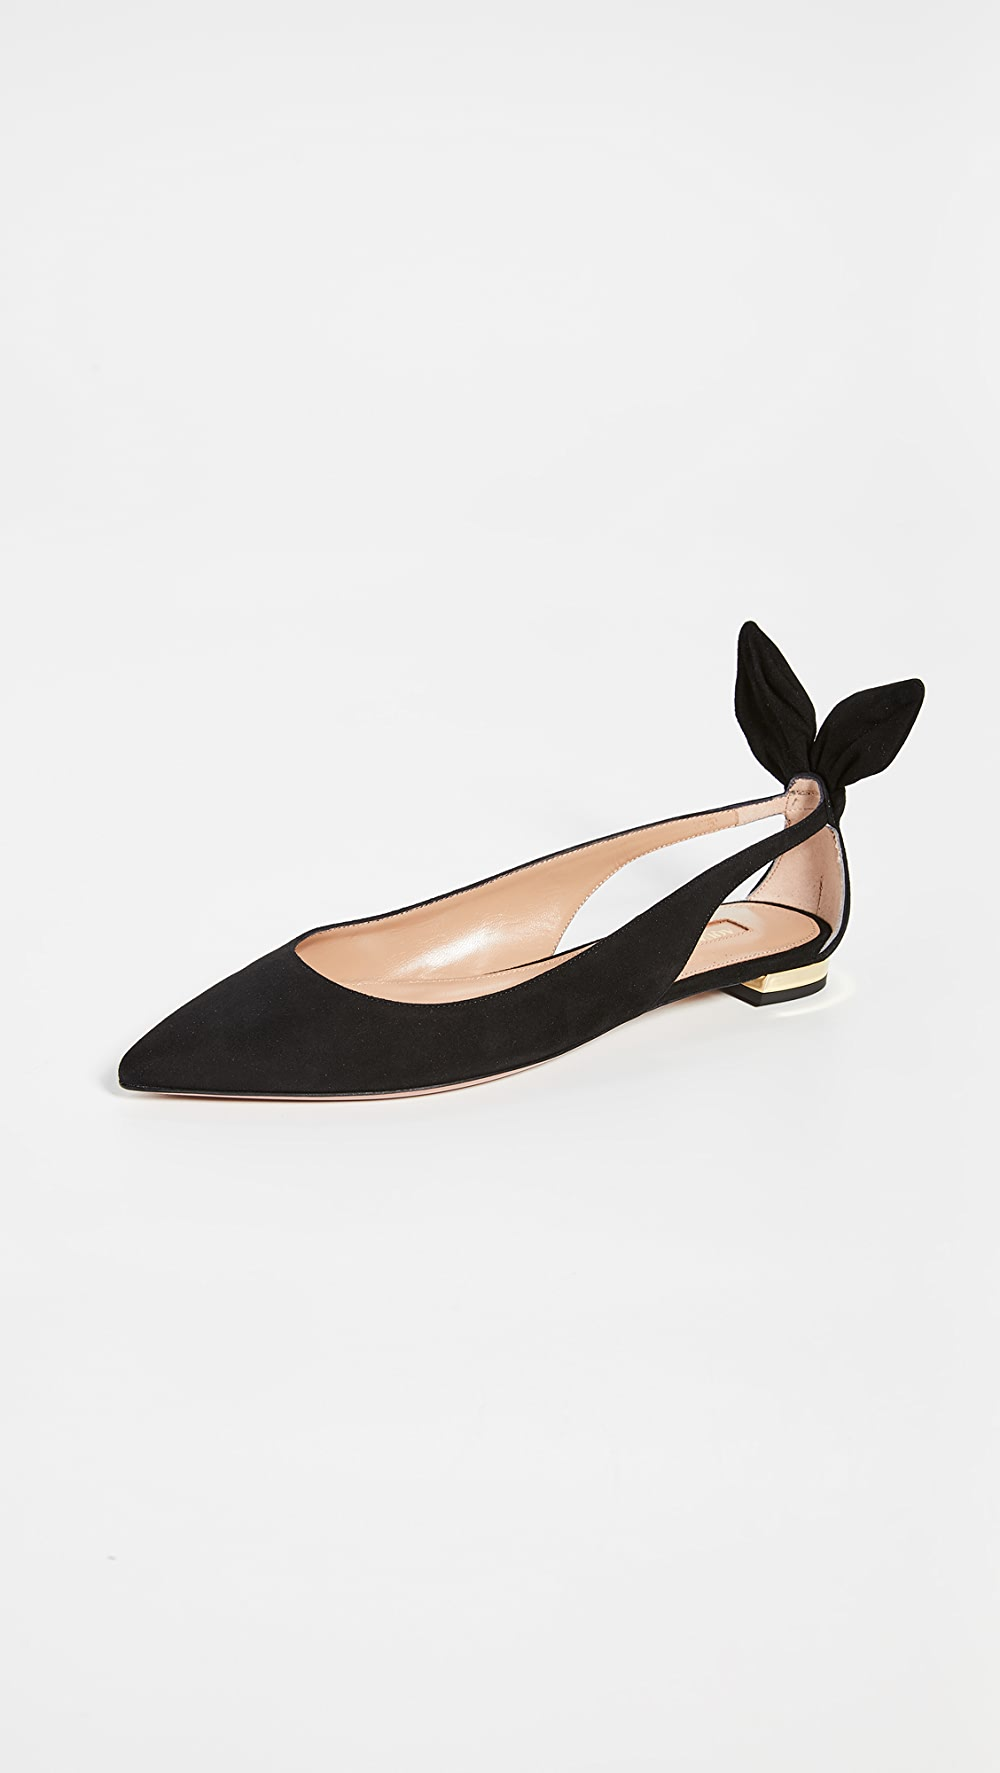 Efficient Aquazzura - Deneuve Ballet Flats To Win A High Admiration And Is Widely Trusted At Home And Abroad.